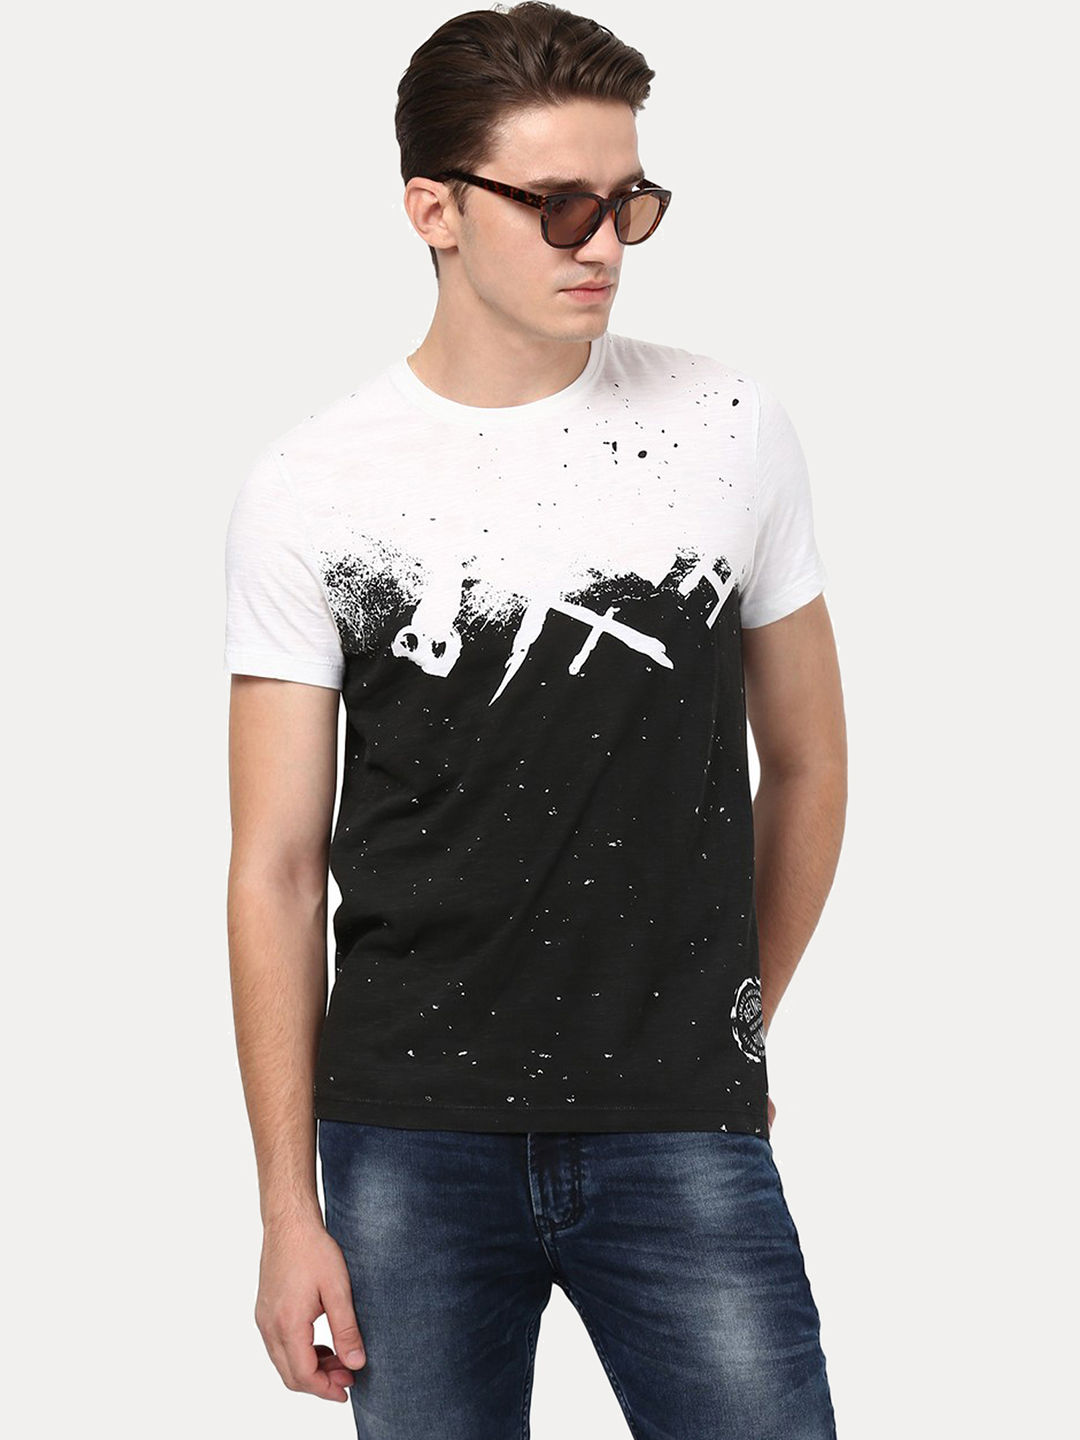 WHITE AND BLACK PRINTED T-SHIRT